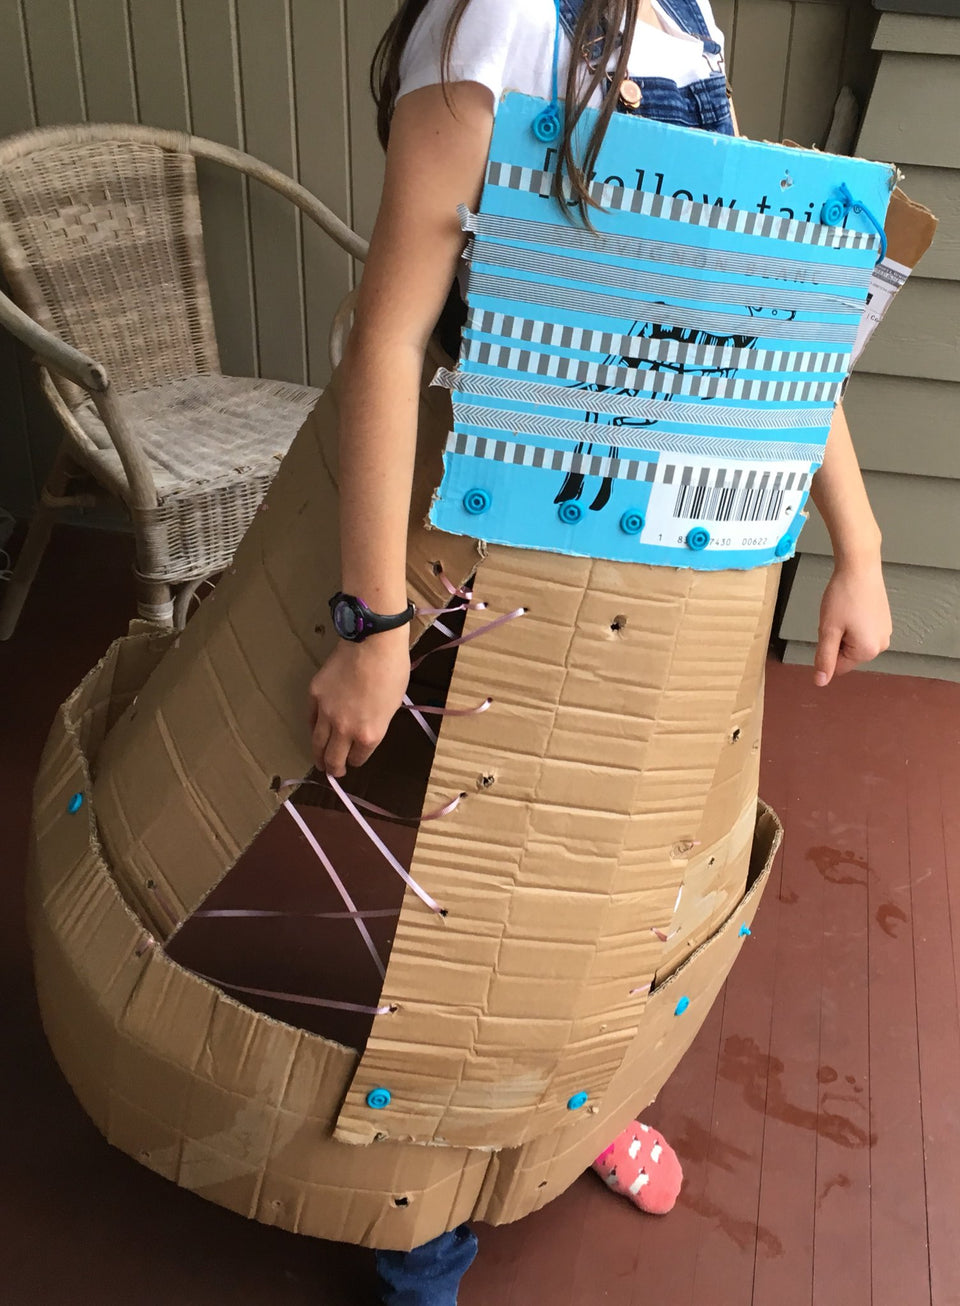 Cardboard dress skirt made with Makedo cardboard construction system